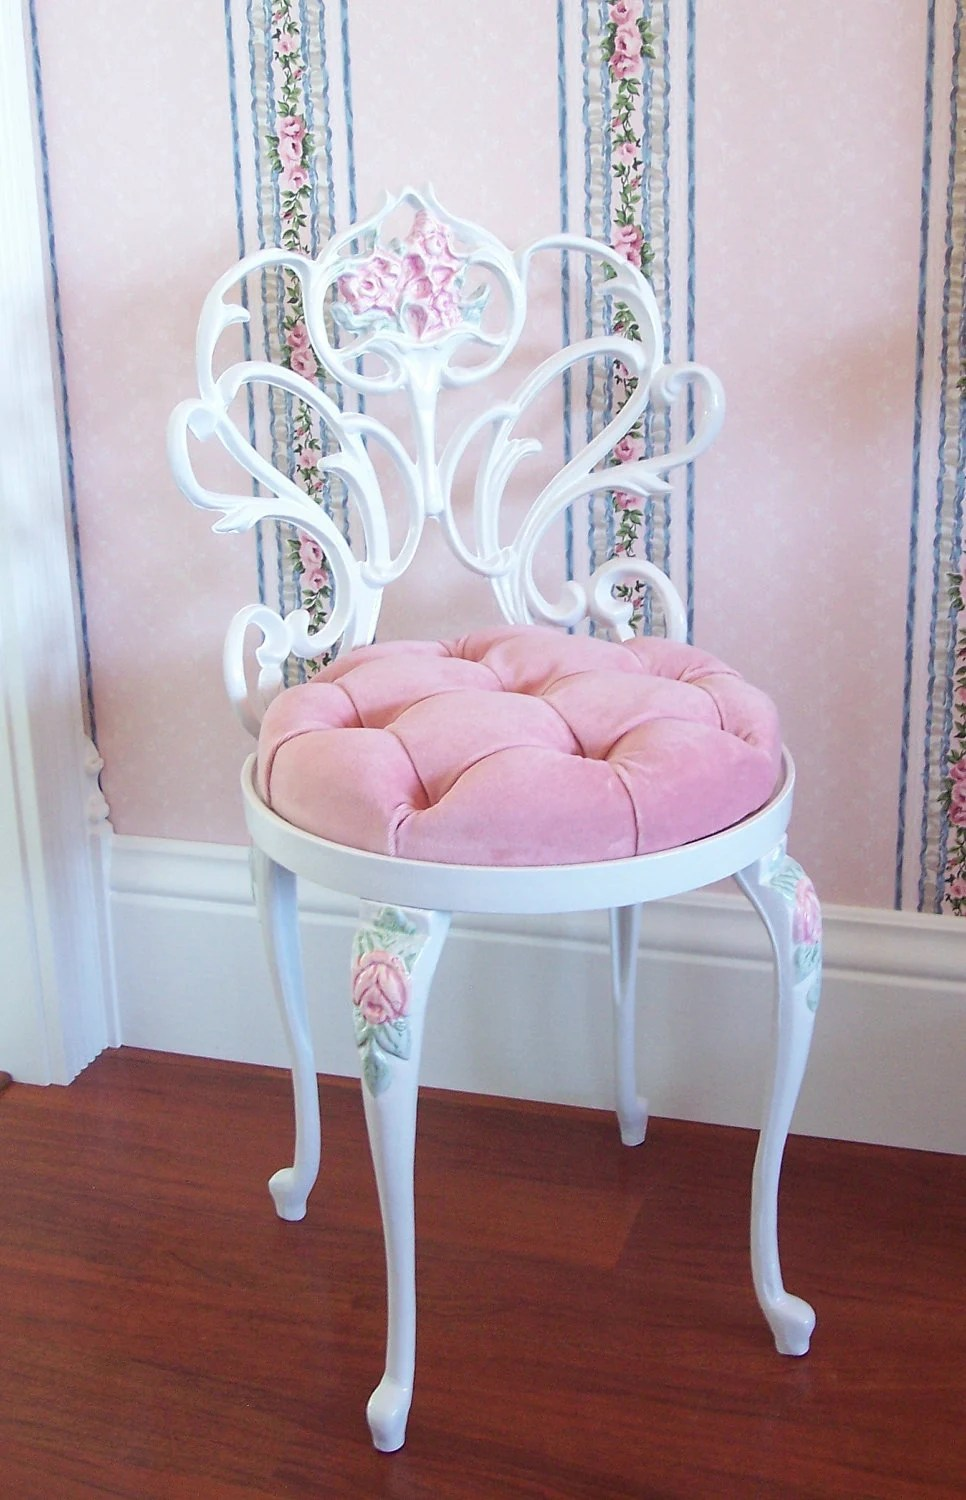 Vintage White Scrolly Boudoir Vanity Chair by pinkchicboutique